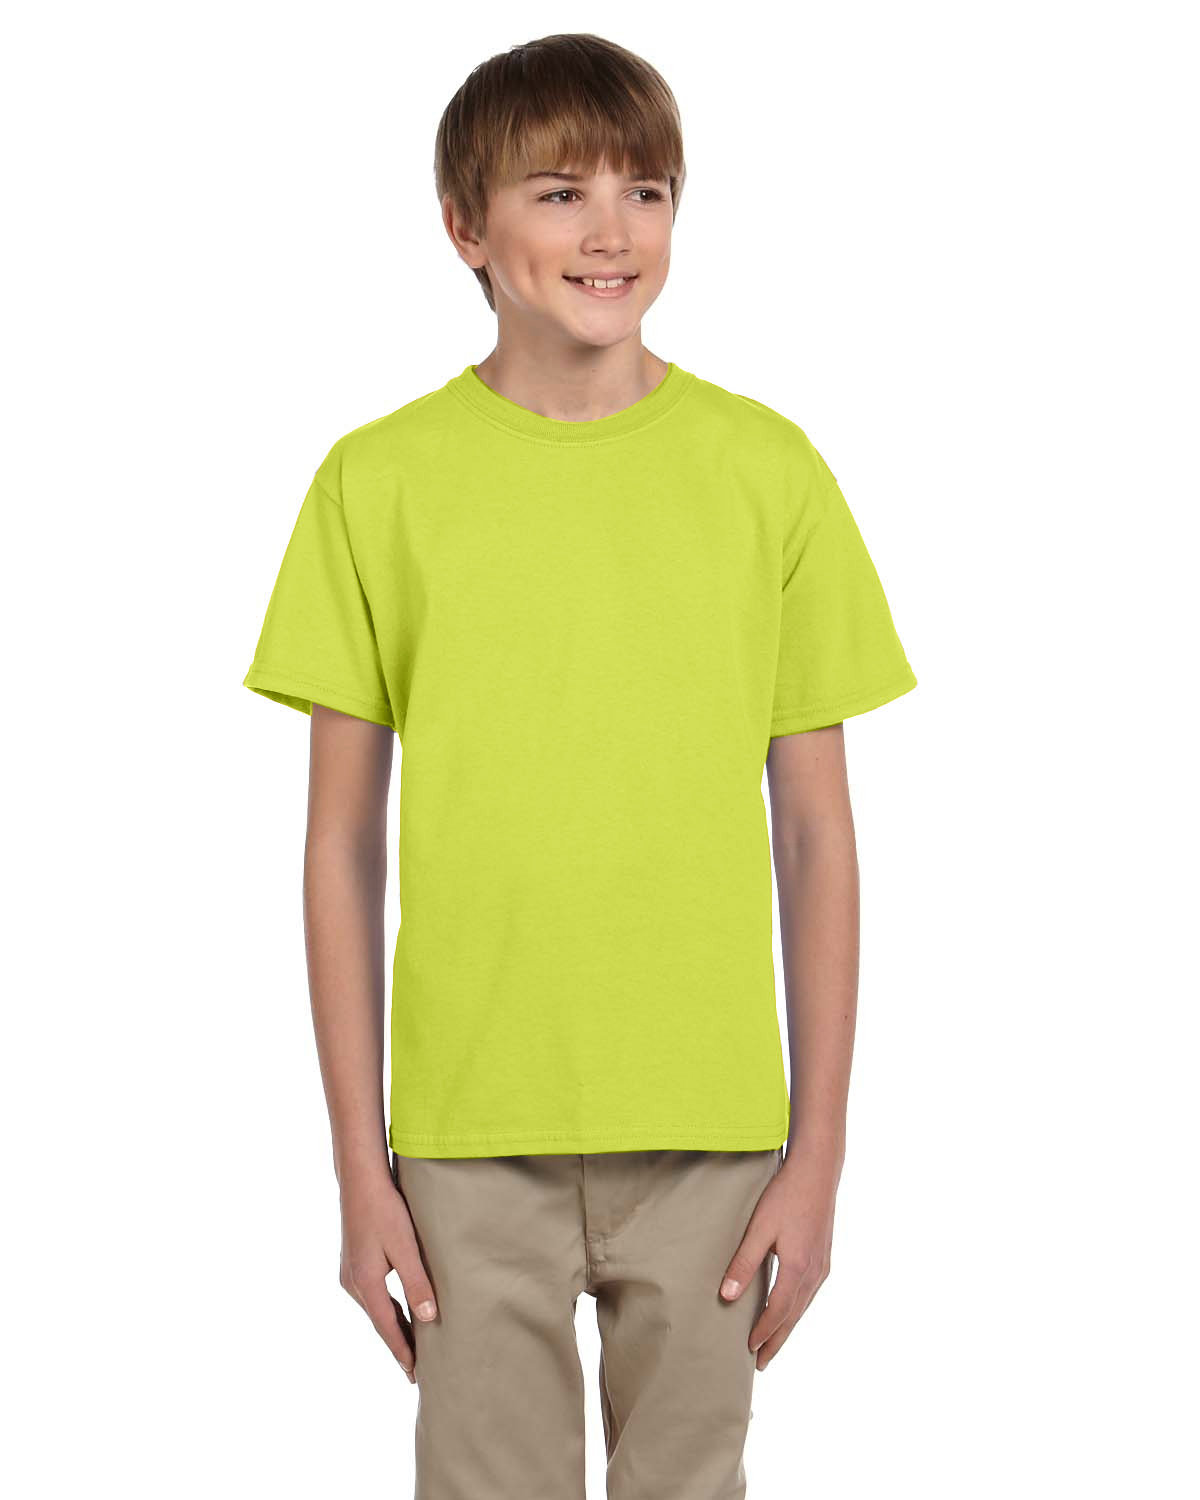 Fruit of the Loom Youth HD Cotton™ T-Shirt SAFETY GREEN